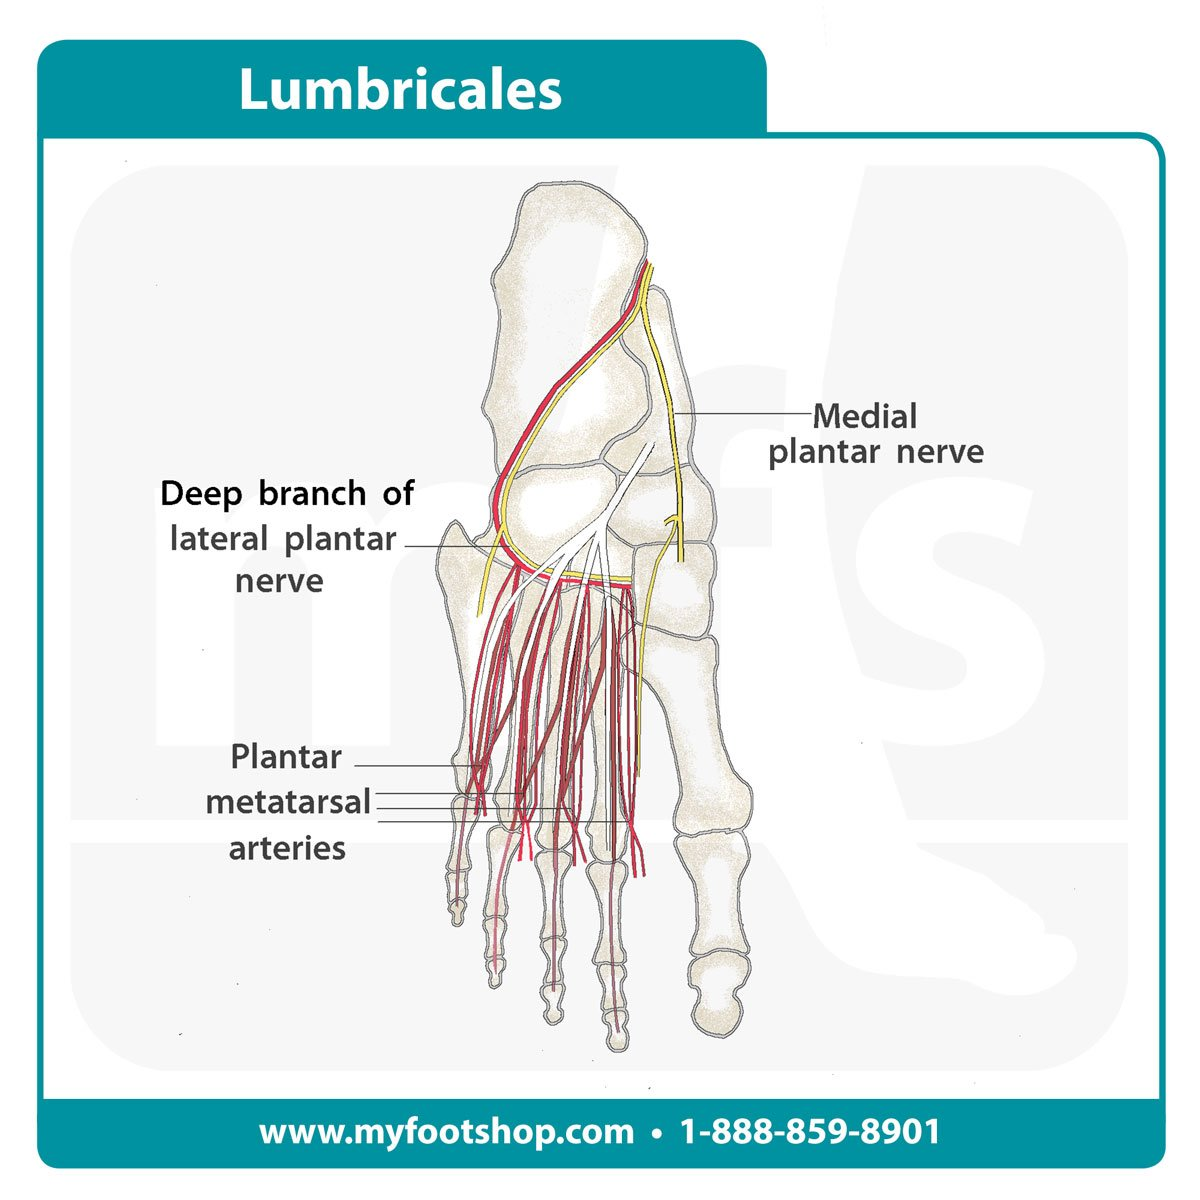 image of the lumbricale muscles of the foot